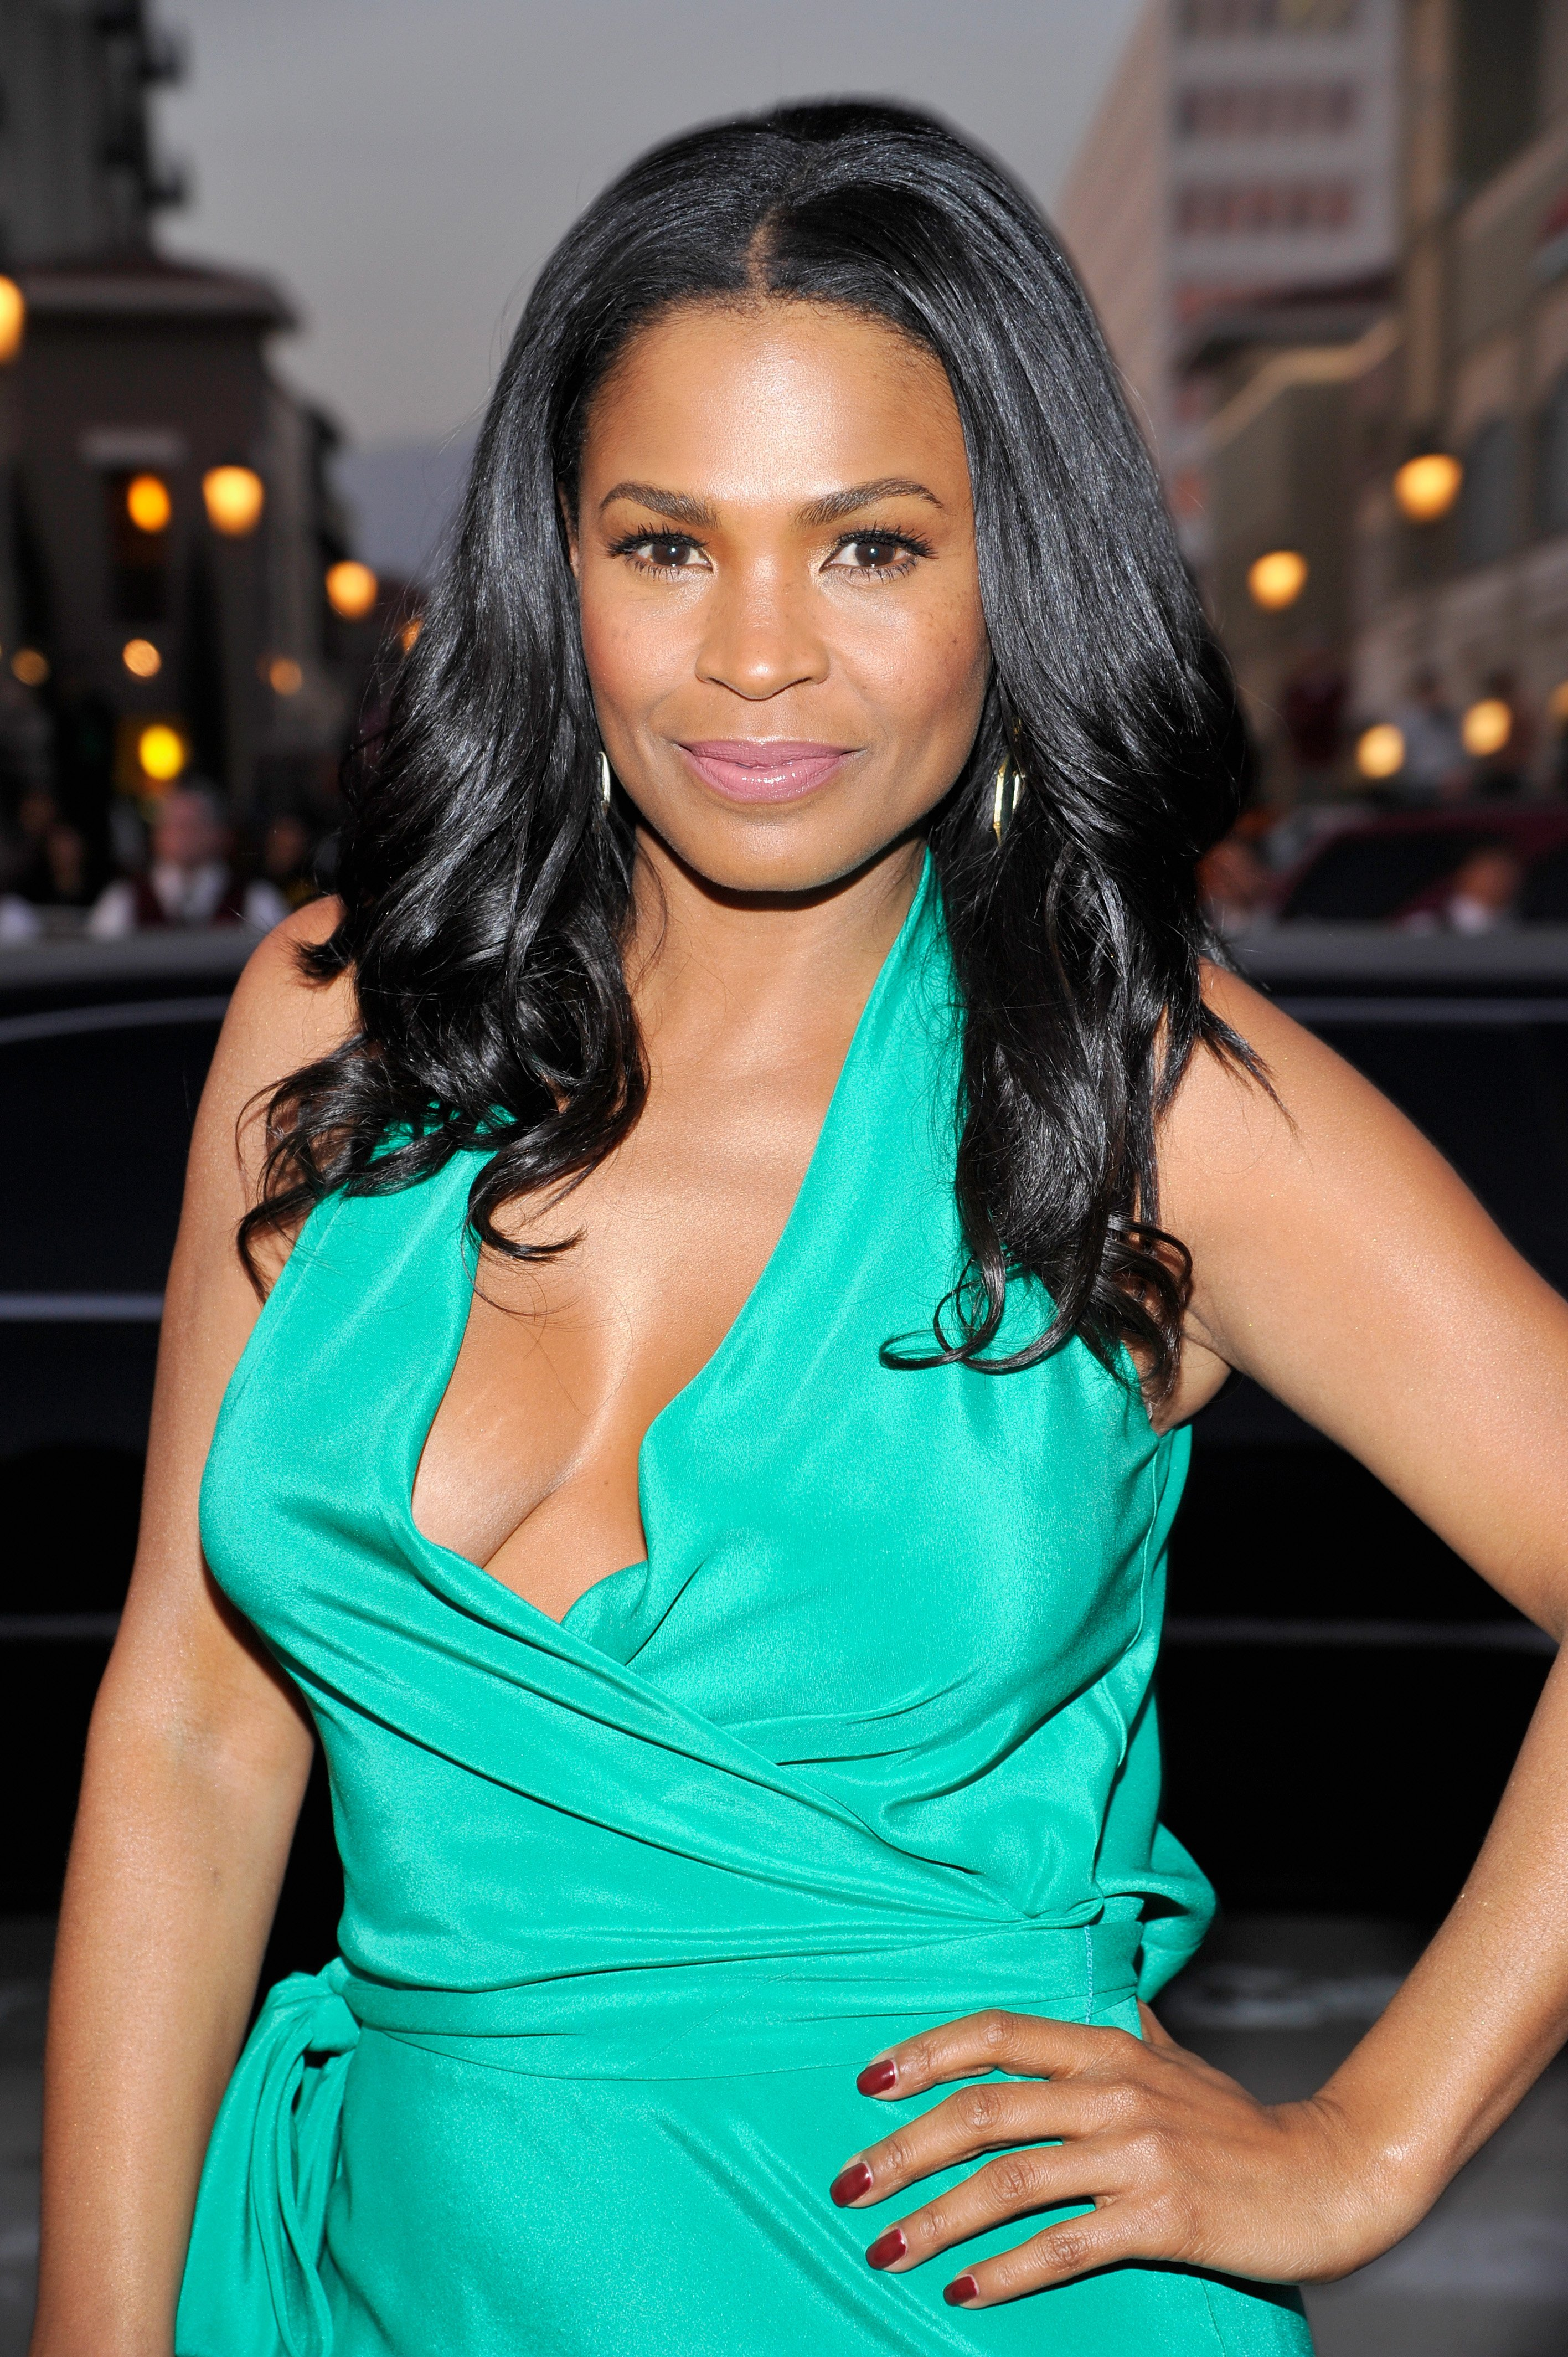 Nia Long pictured at the 45th NAACP Image Awards at Pasadena Civic Auditorium on February 22, 2014. | Photo: Getty Images